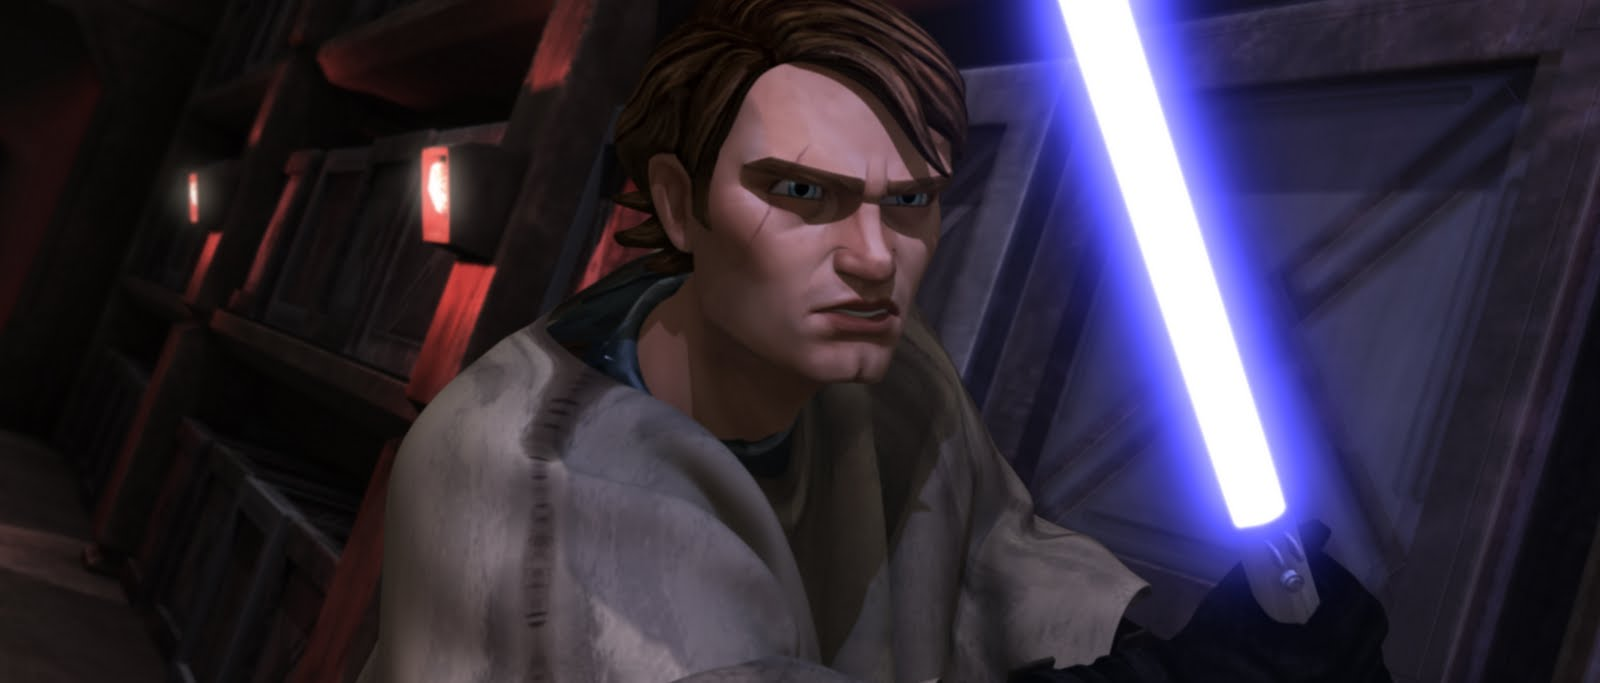 Star+wars+the+clone+wars+anakin+skywalker